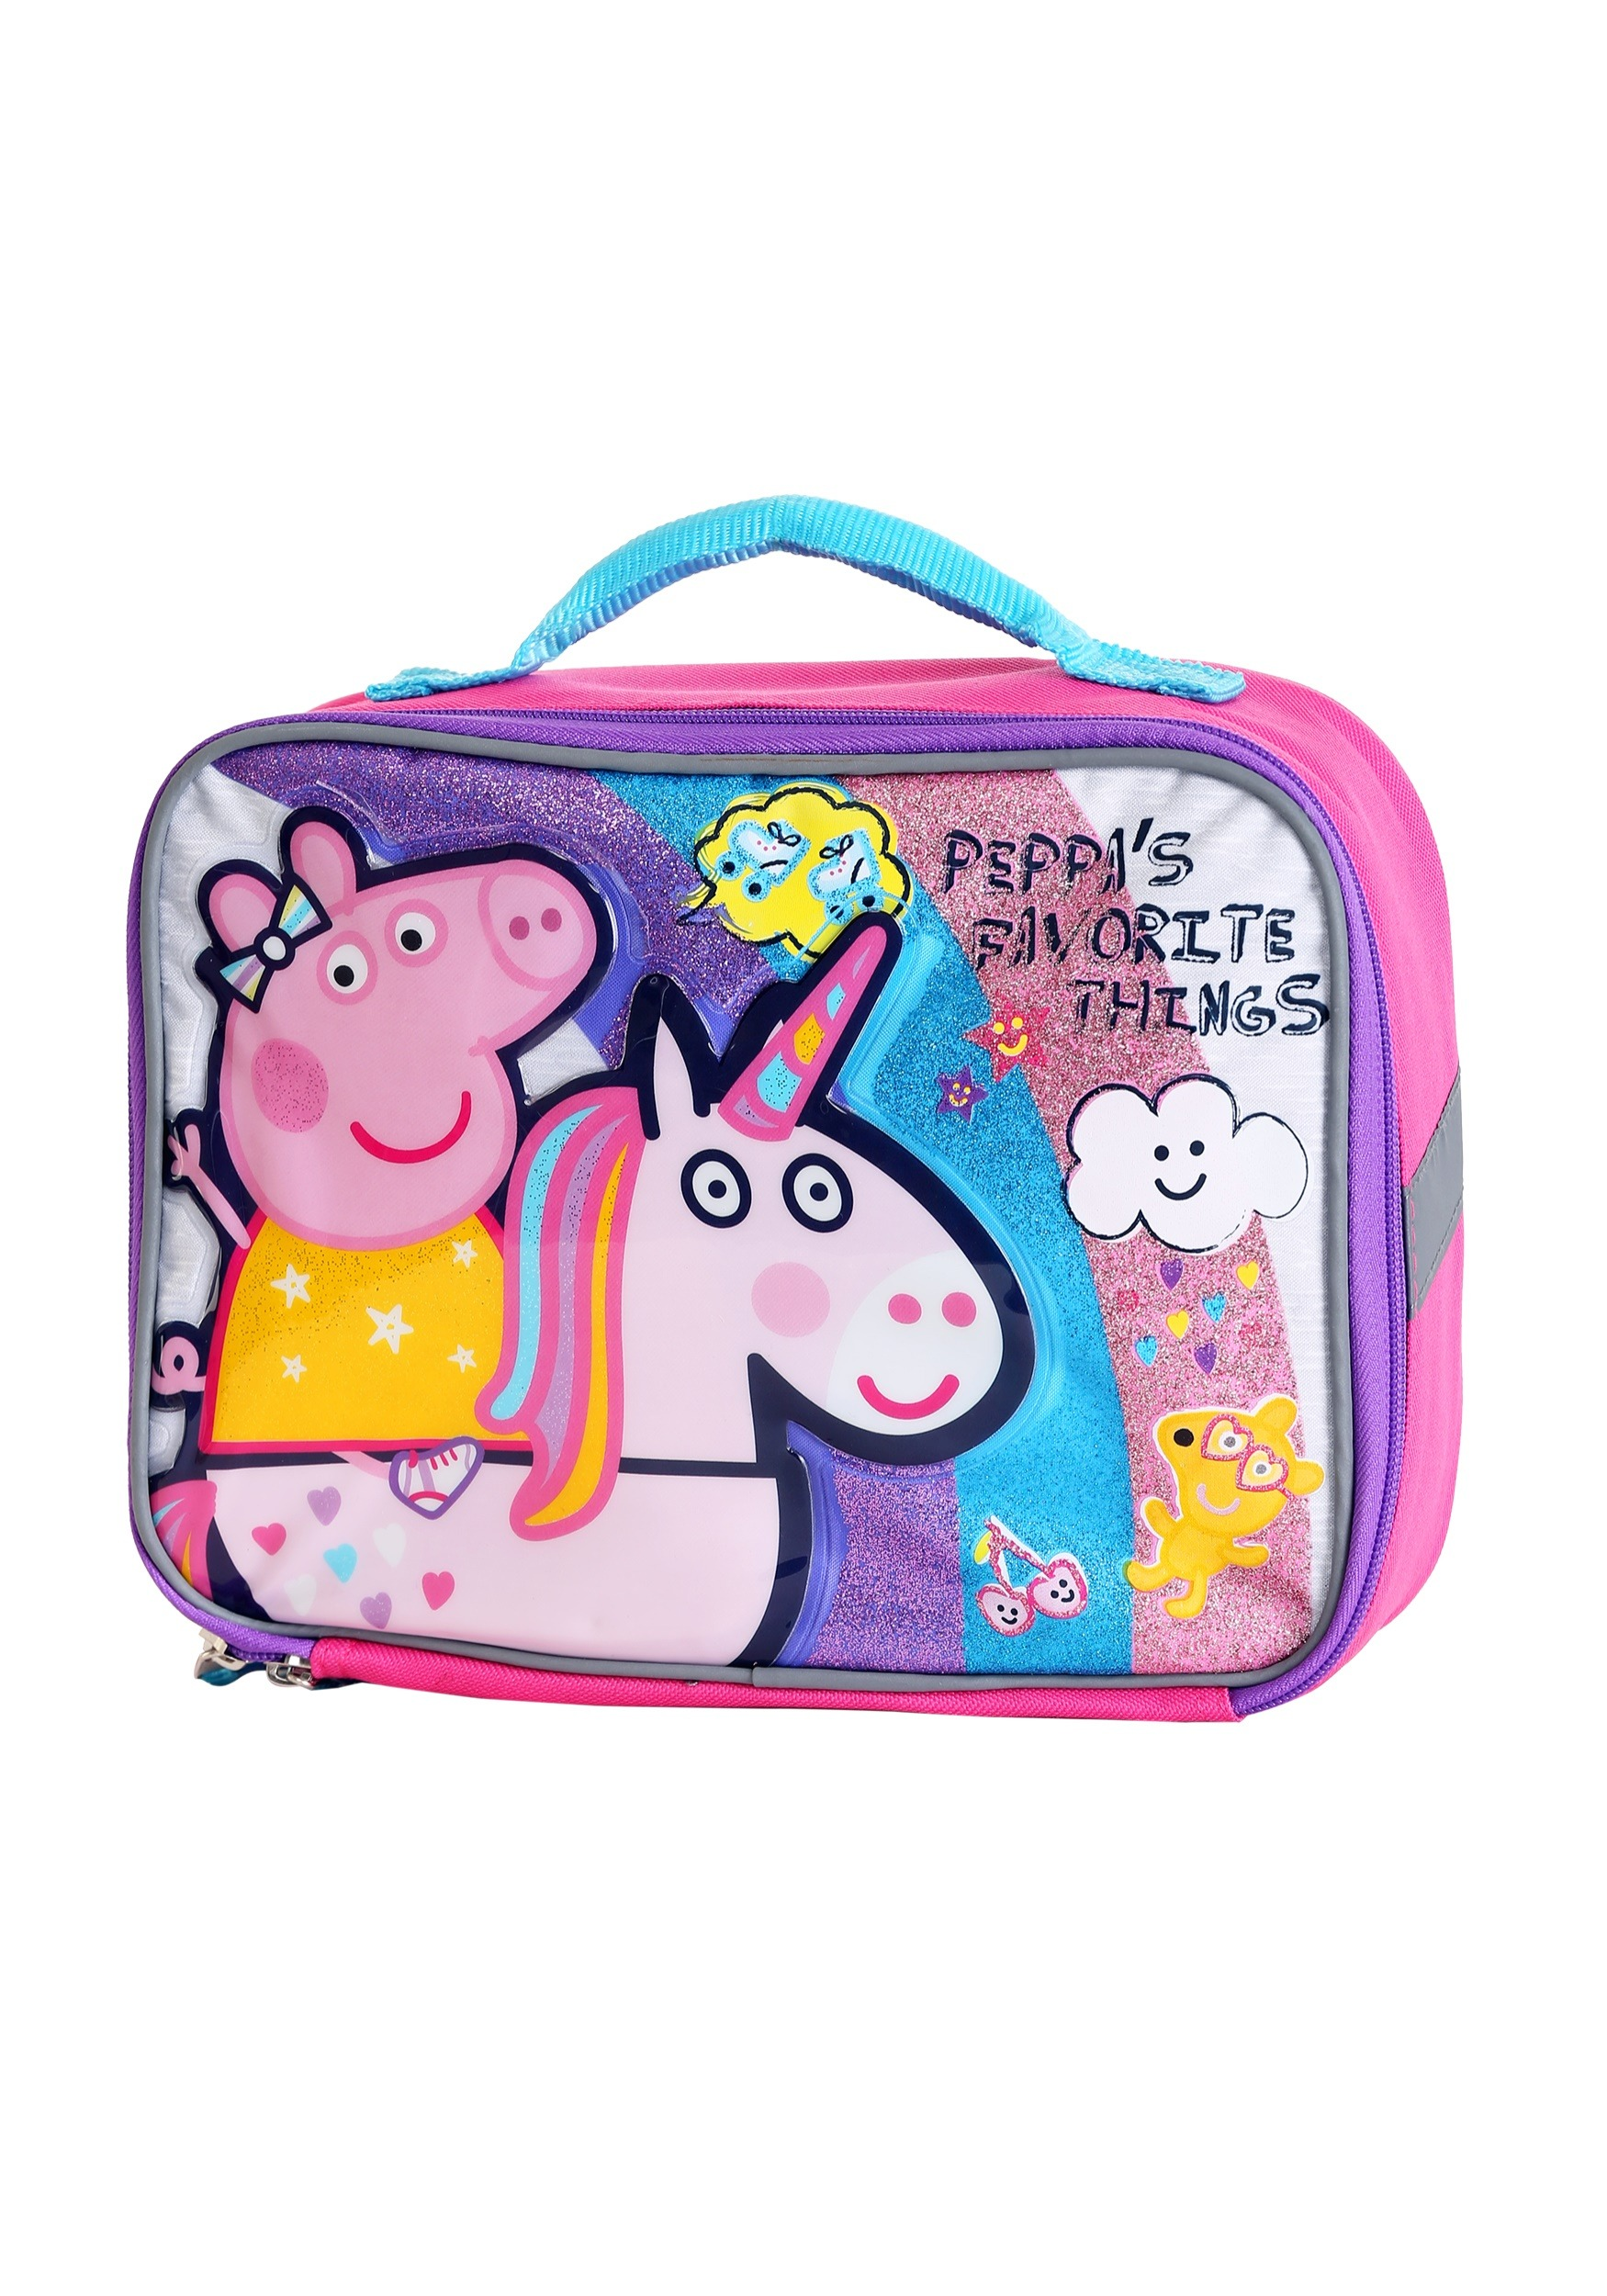 Peppa_Pigs_Favorite_Things_Lunch_Tote